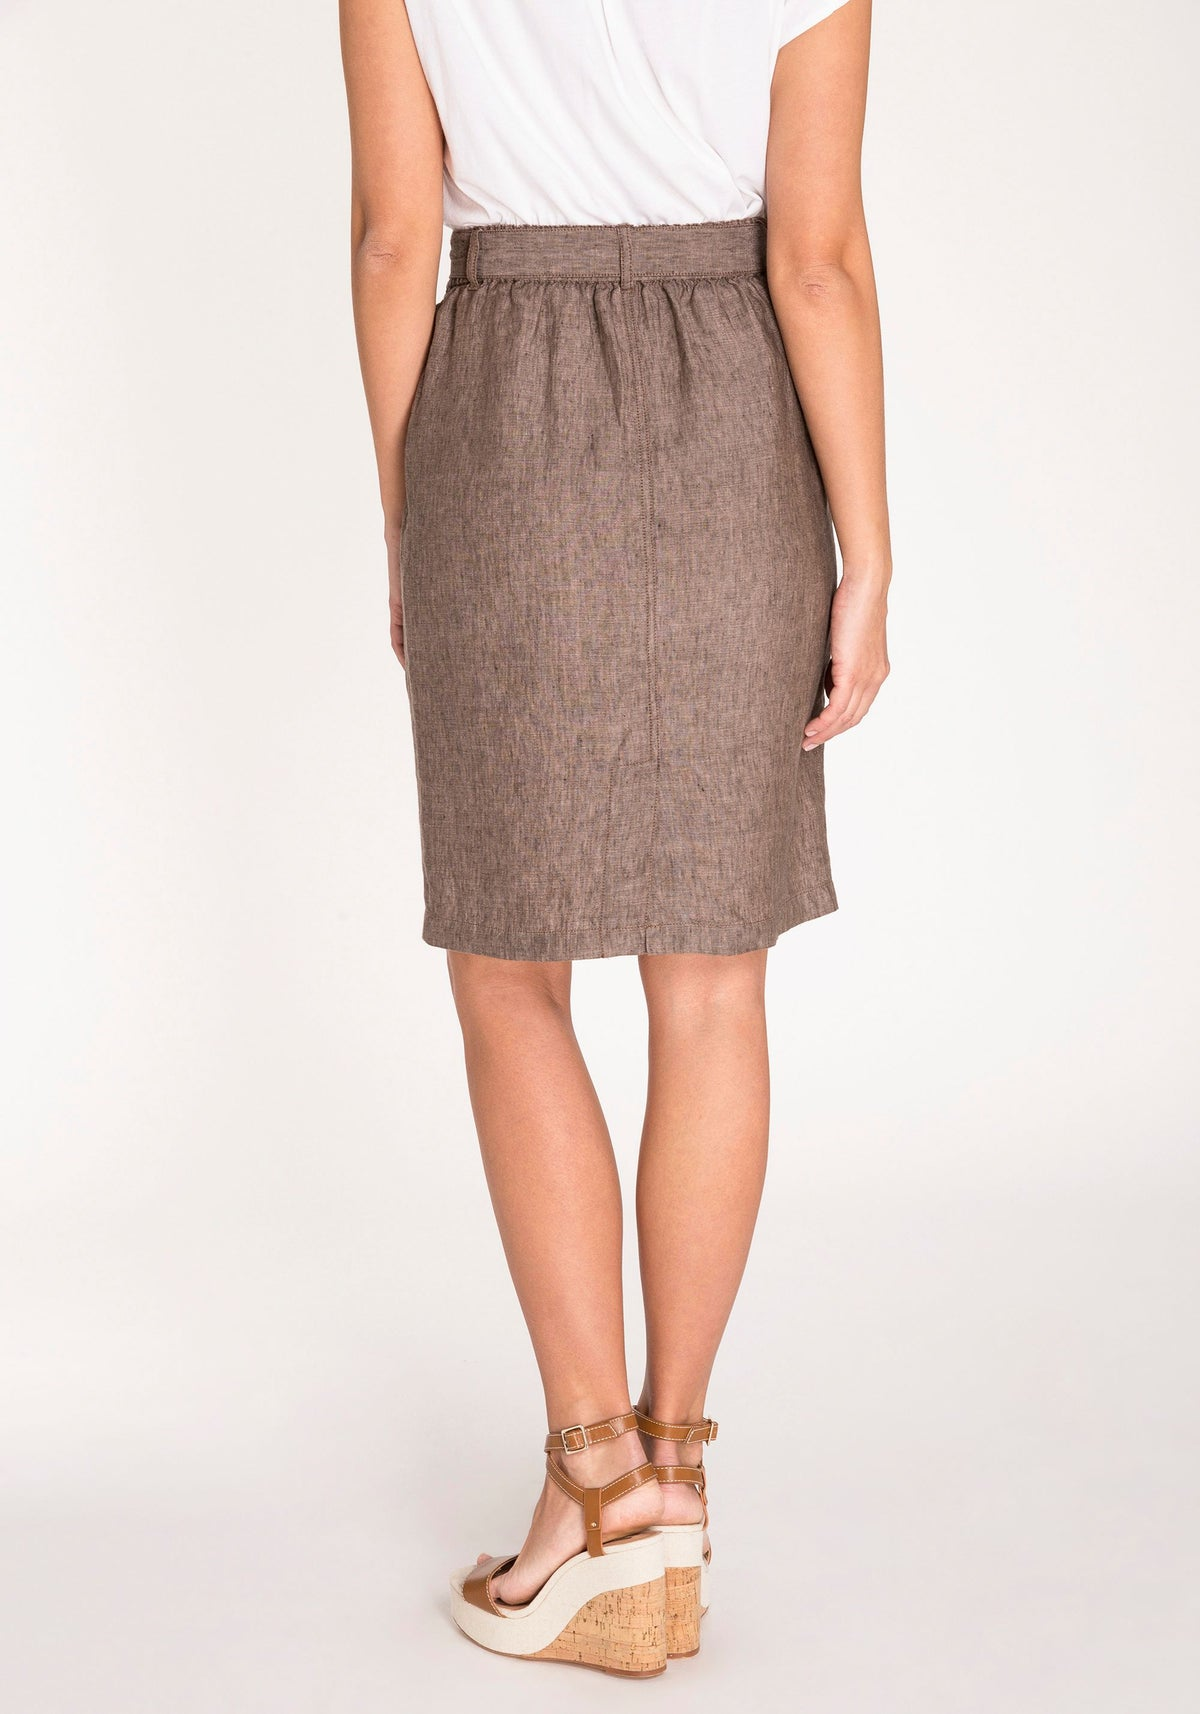 100% Linen Skirt with Waist Tie